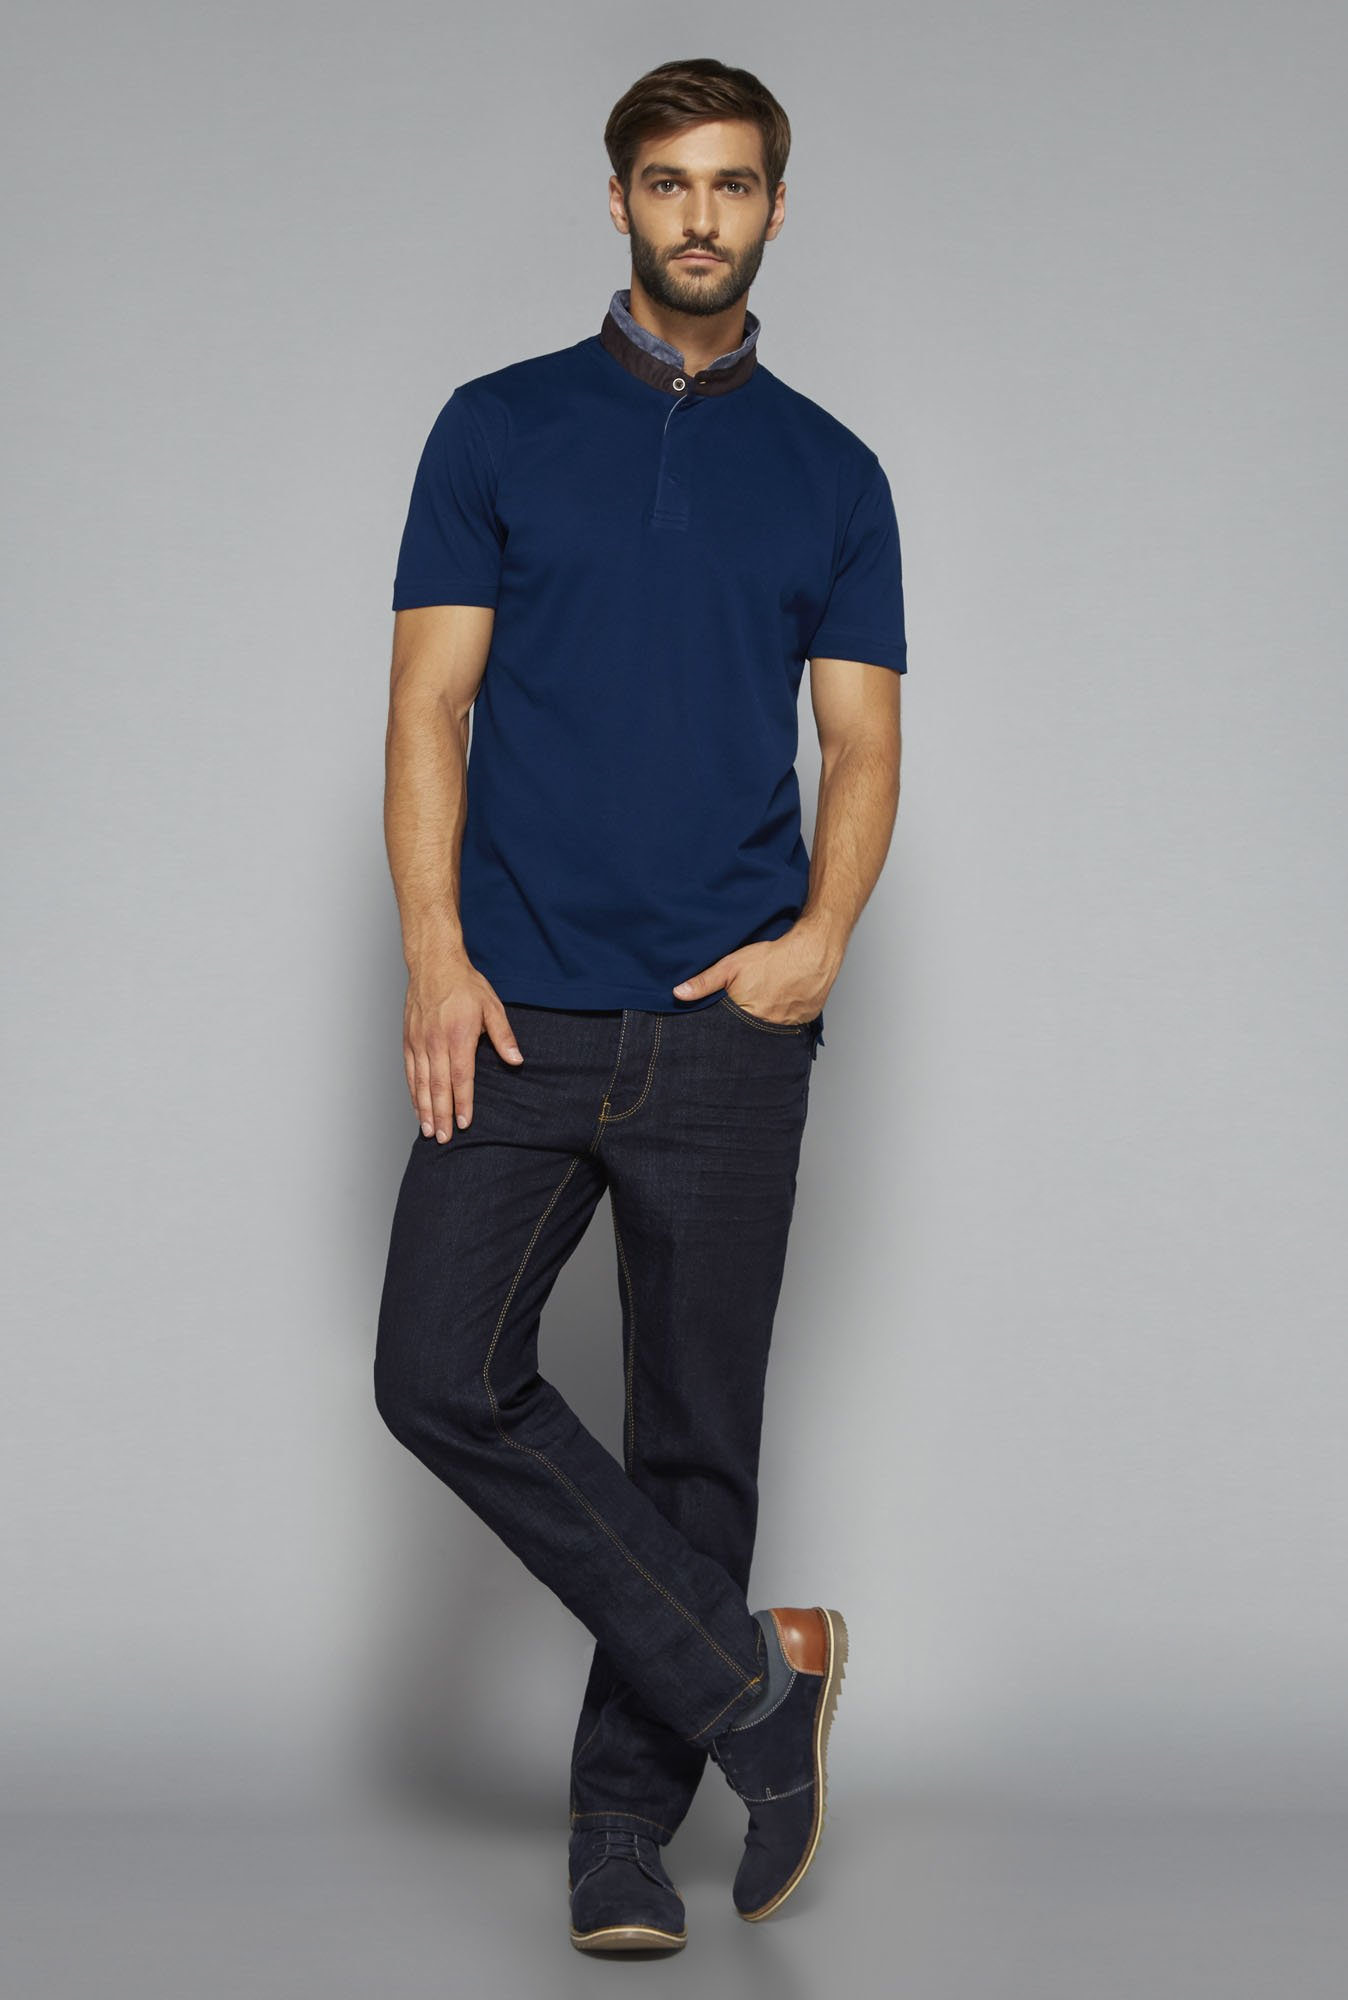 Ascot by Westside Navy Solid T Shirt